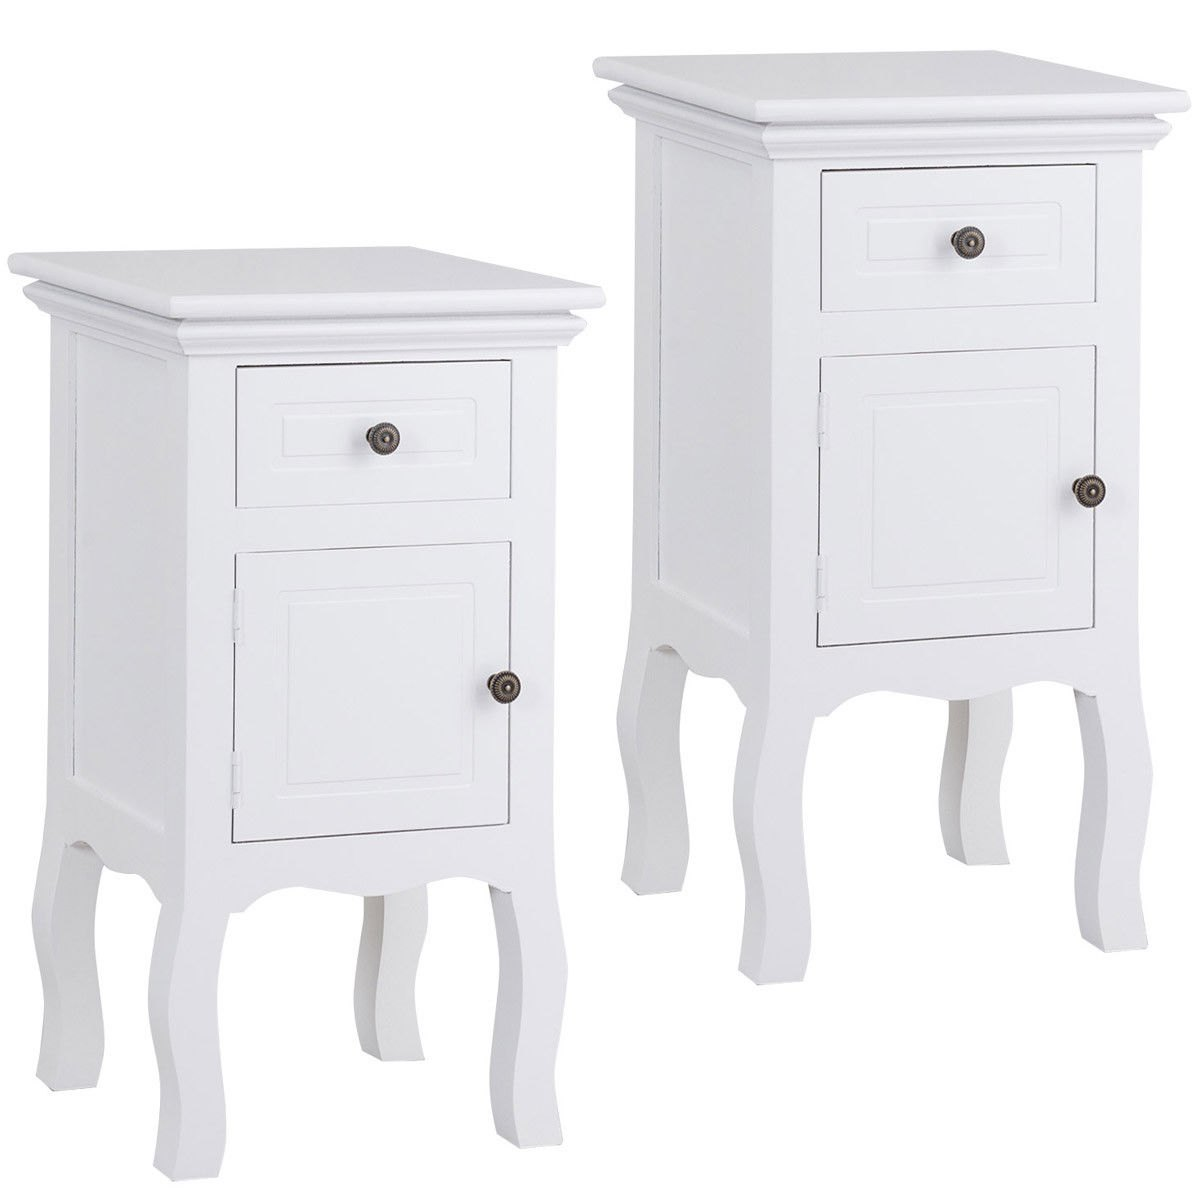 way white nightstand storage drawer and cabinet accent table with wood end couch ping threshold wicker espresso furniture round lucite side ethan allen pineapple chairs ice box